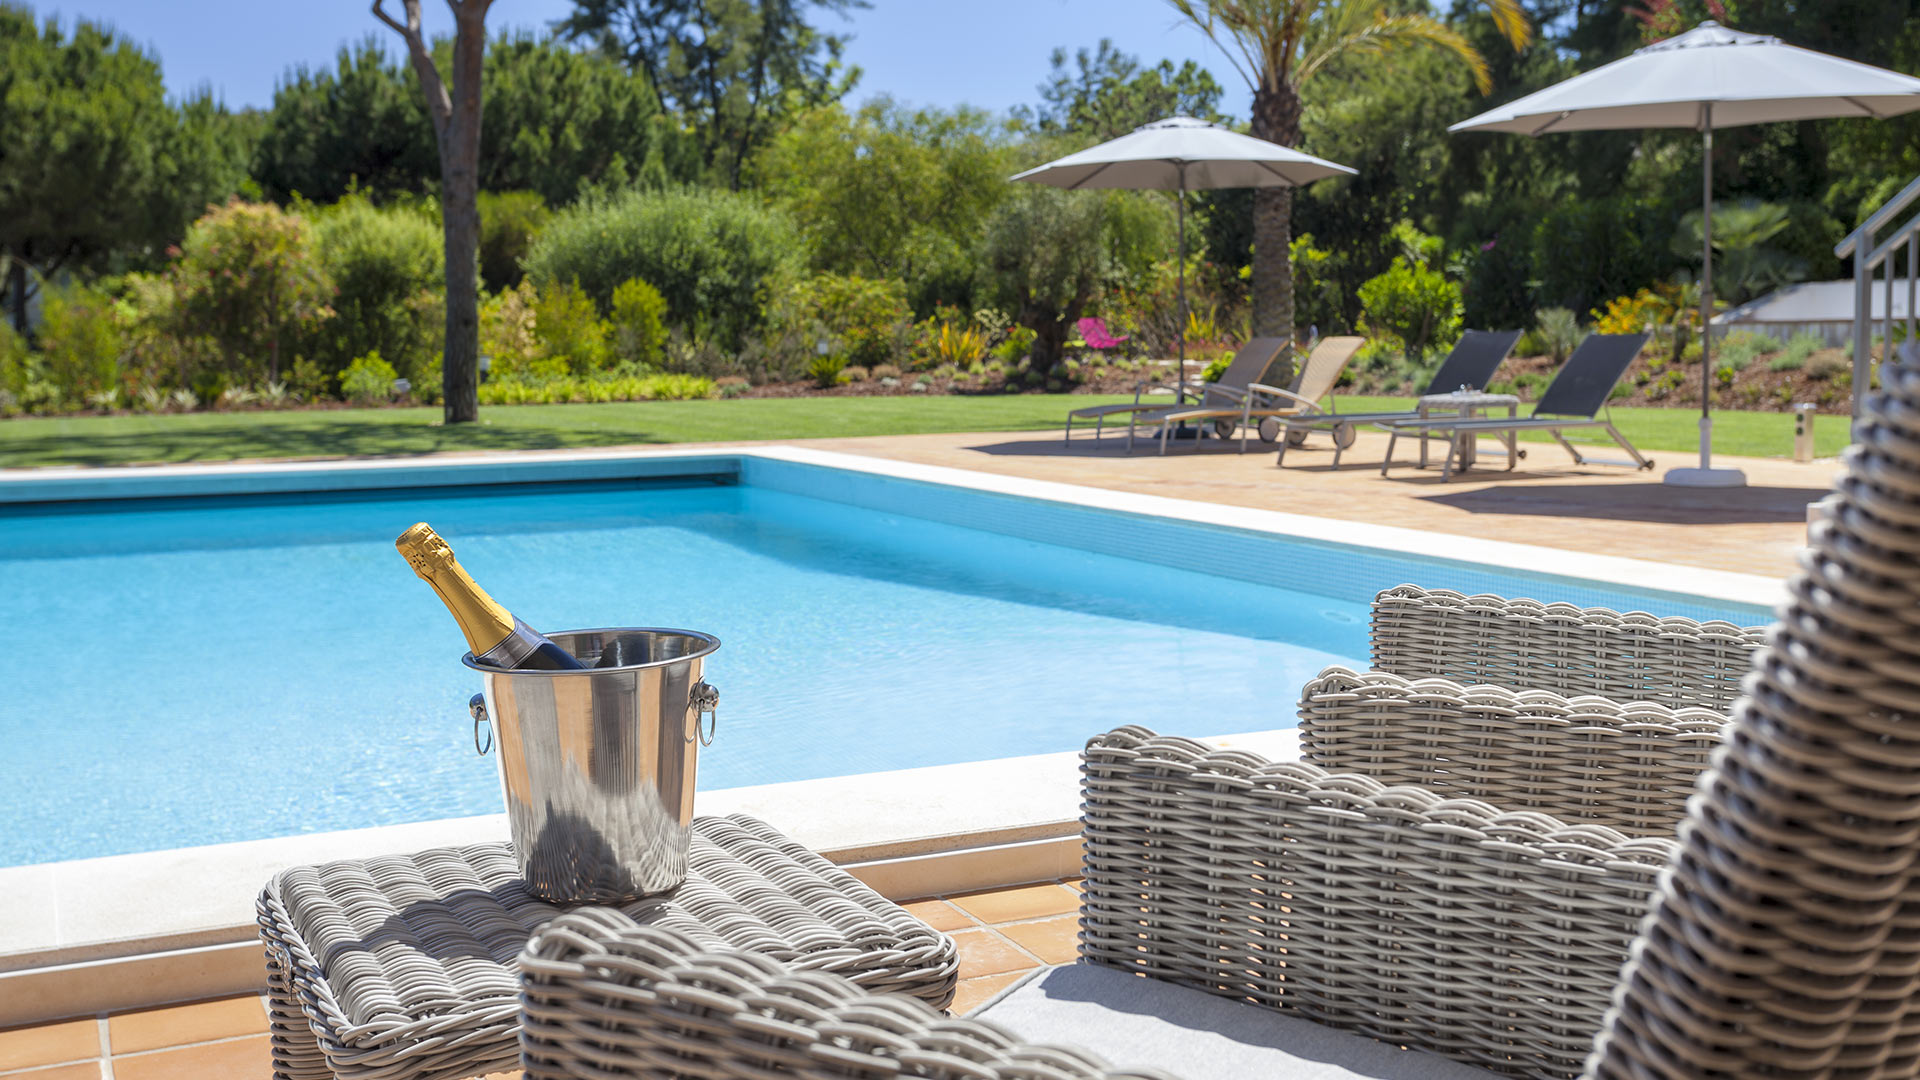 Villa Villa Giardina, Rental in Algarve